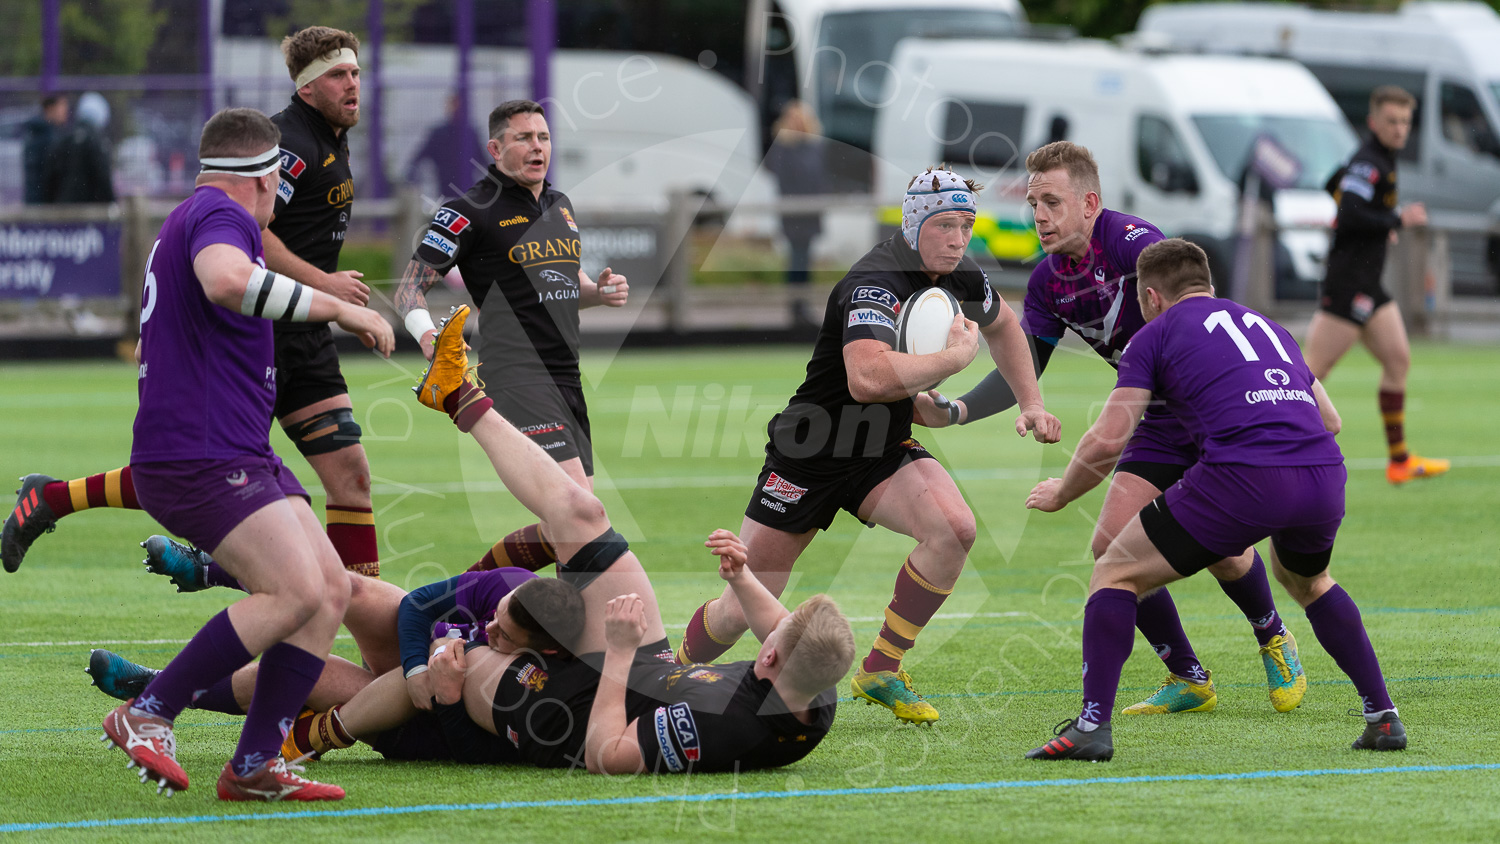 20190427 Loughborough vs Ampthill 1st XV #6580